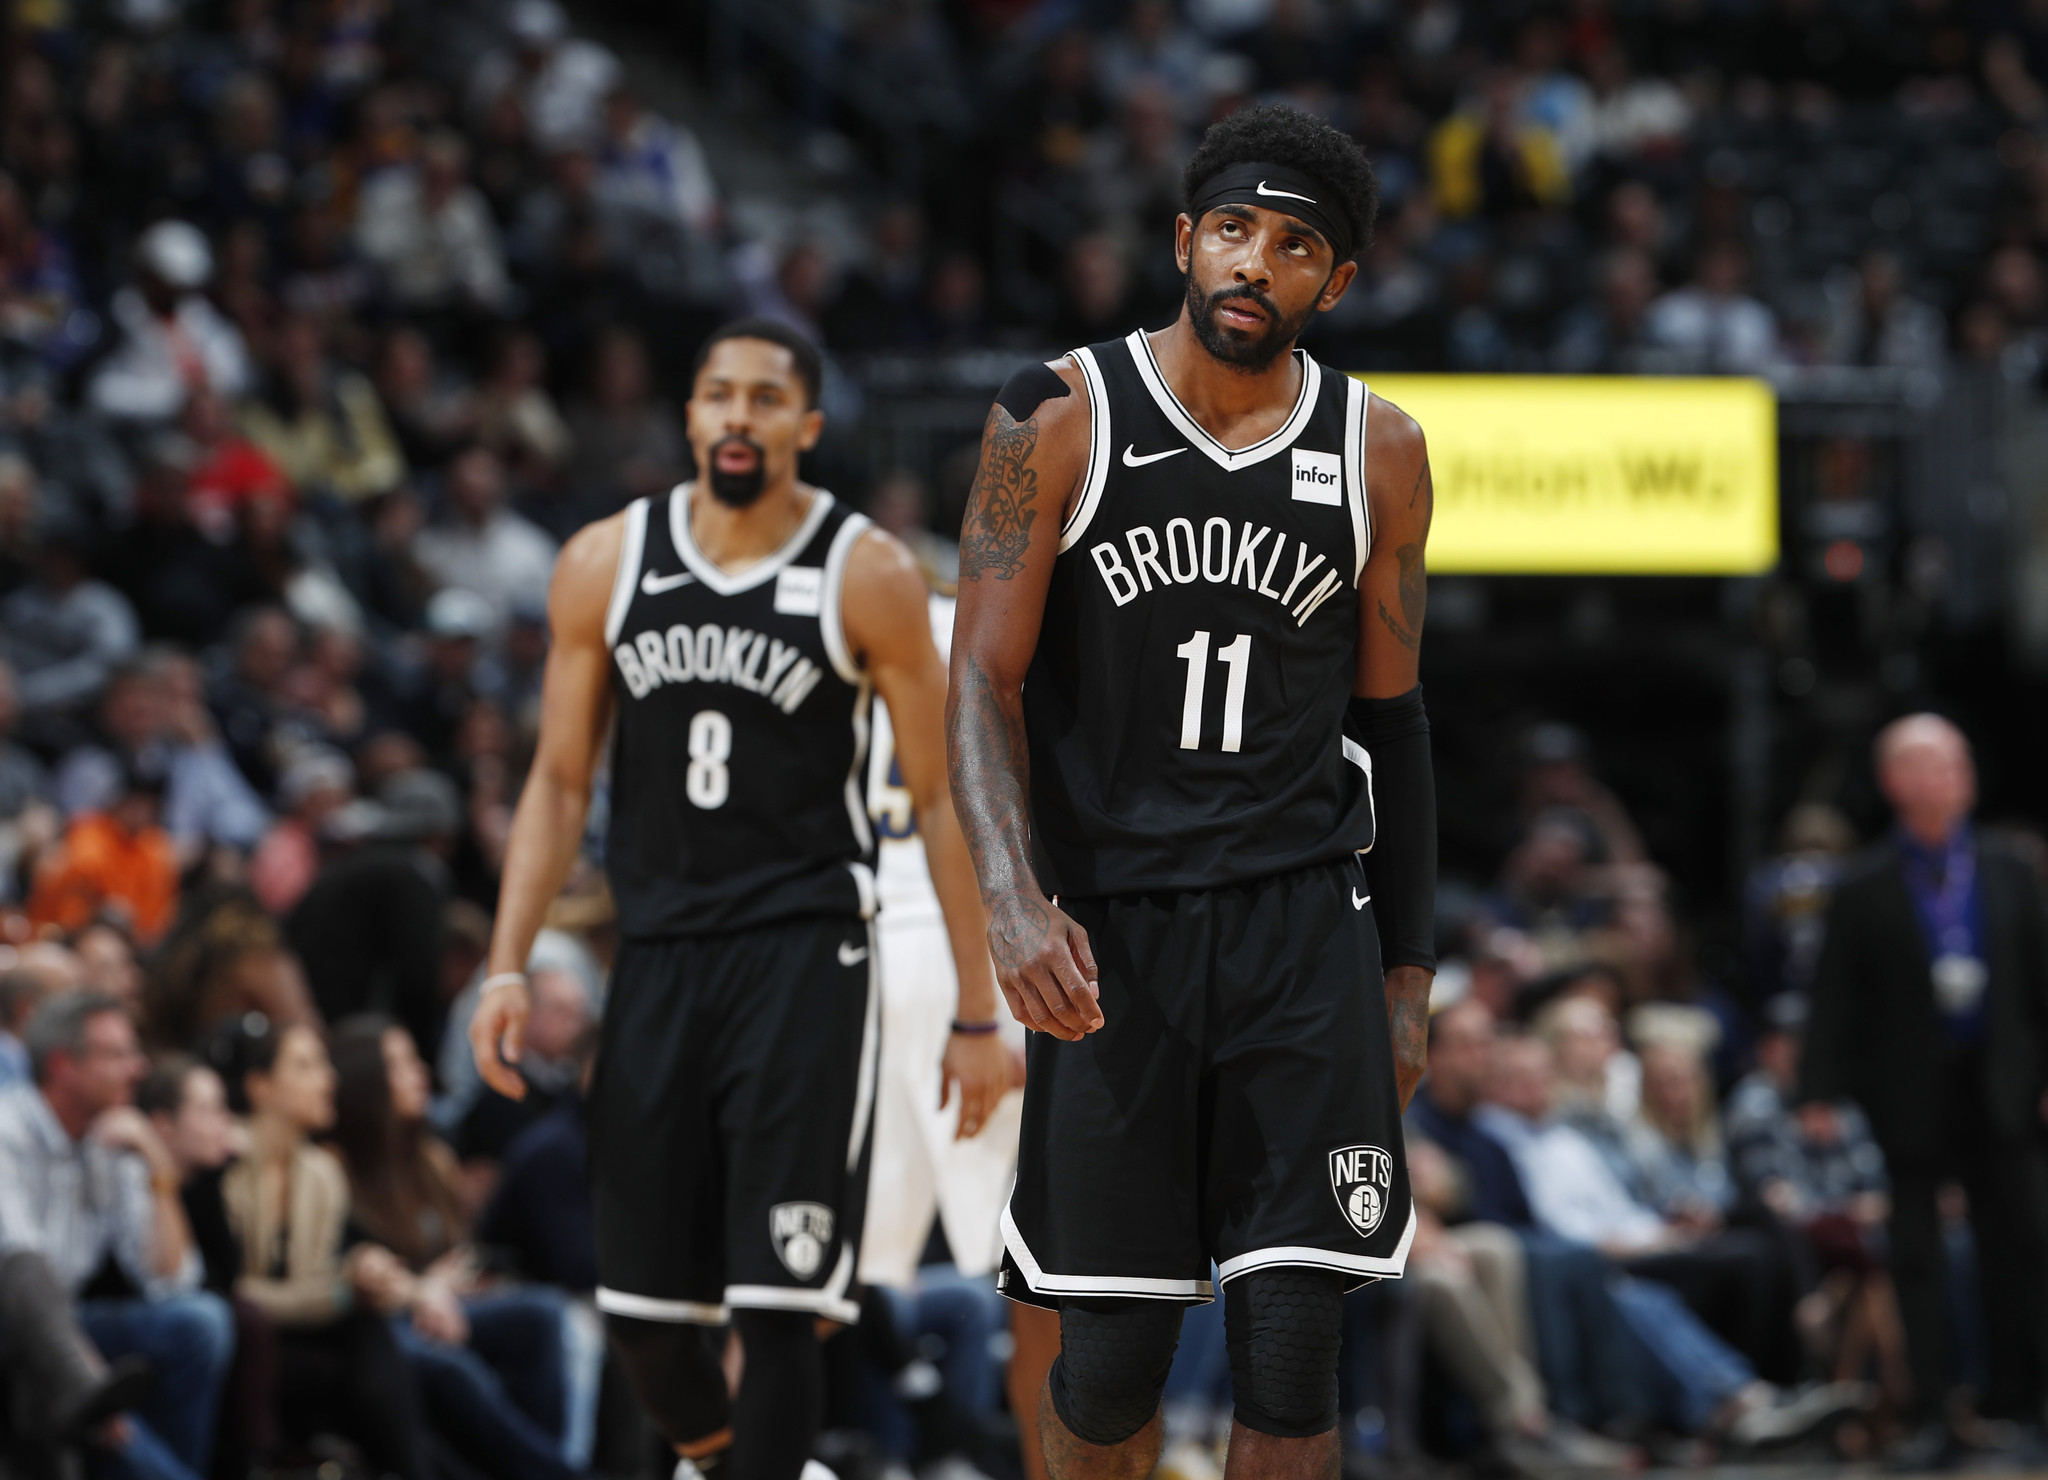 The Nets' 3 stars play the same position. Can they make it work?